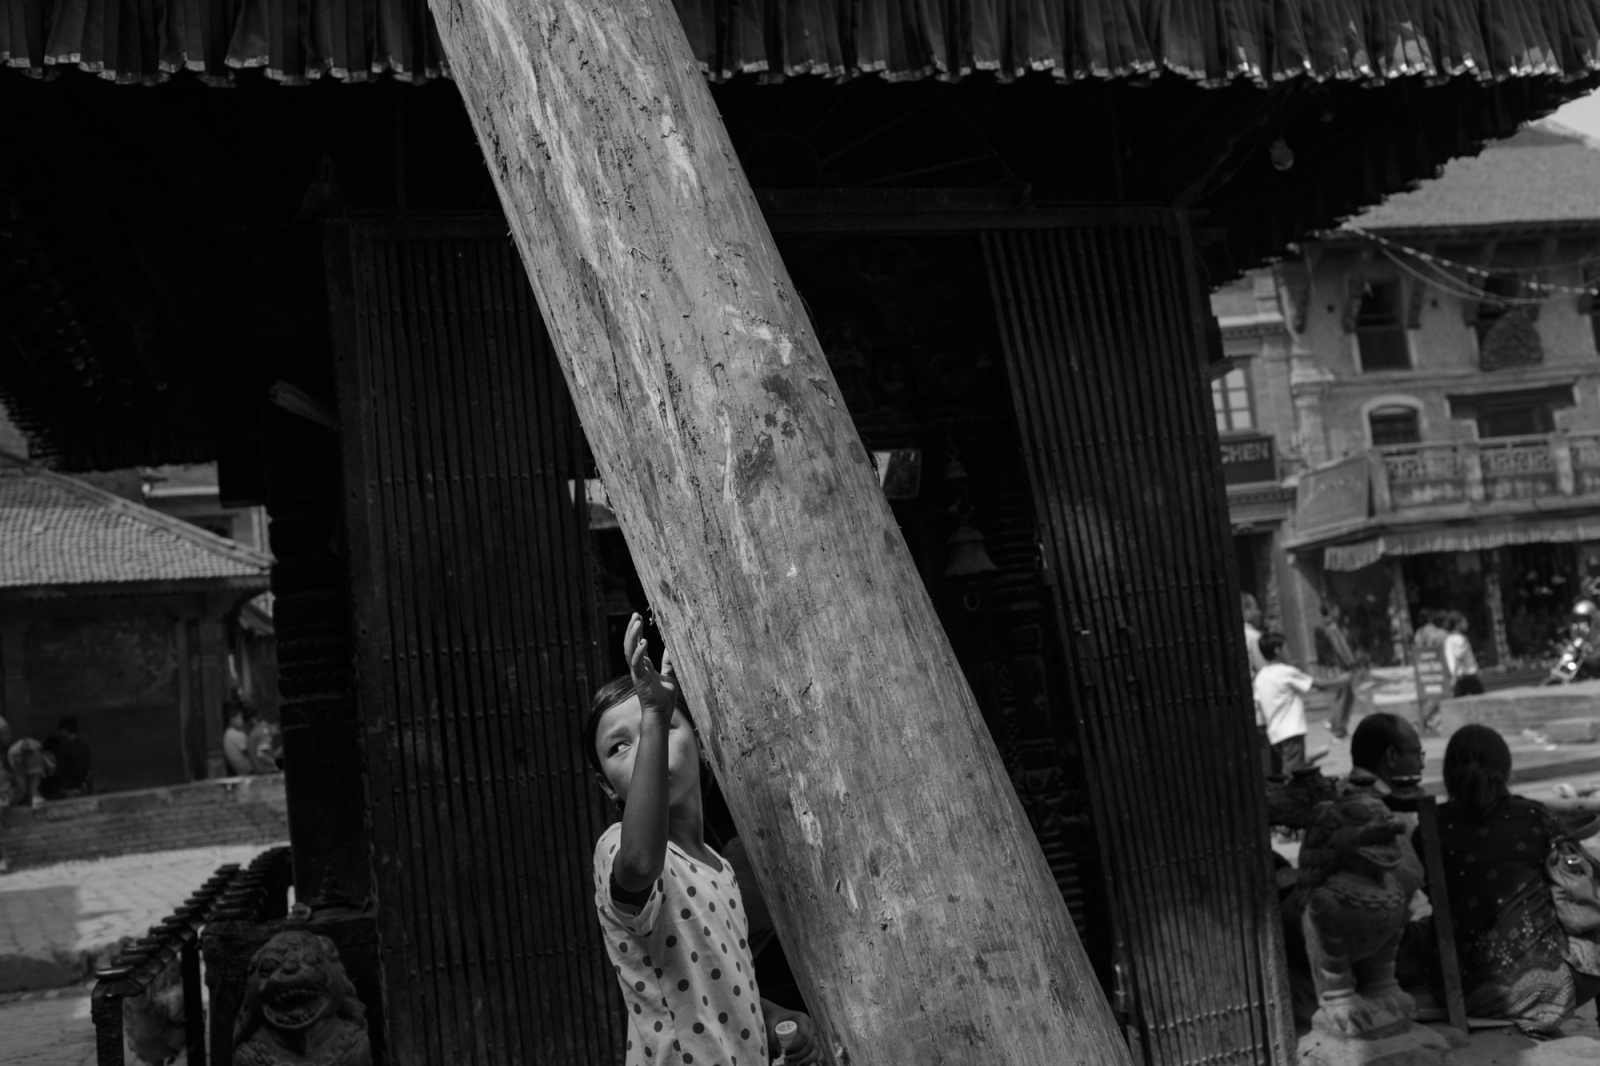 A young girl touches a tall wooden pole believed to bring good luck during the Nepali New Year.